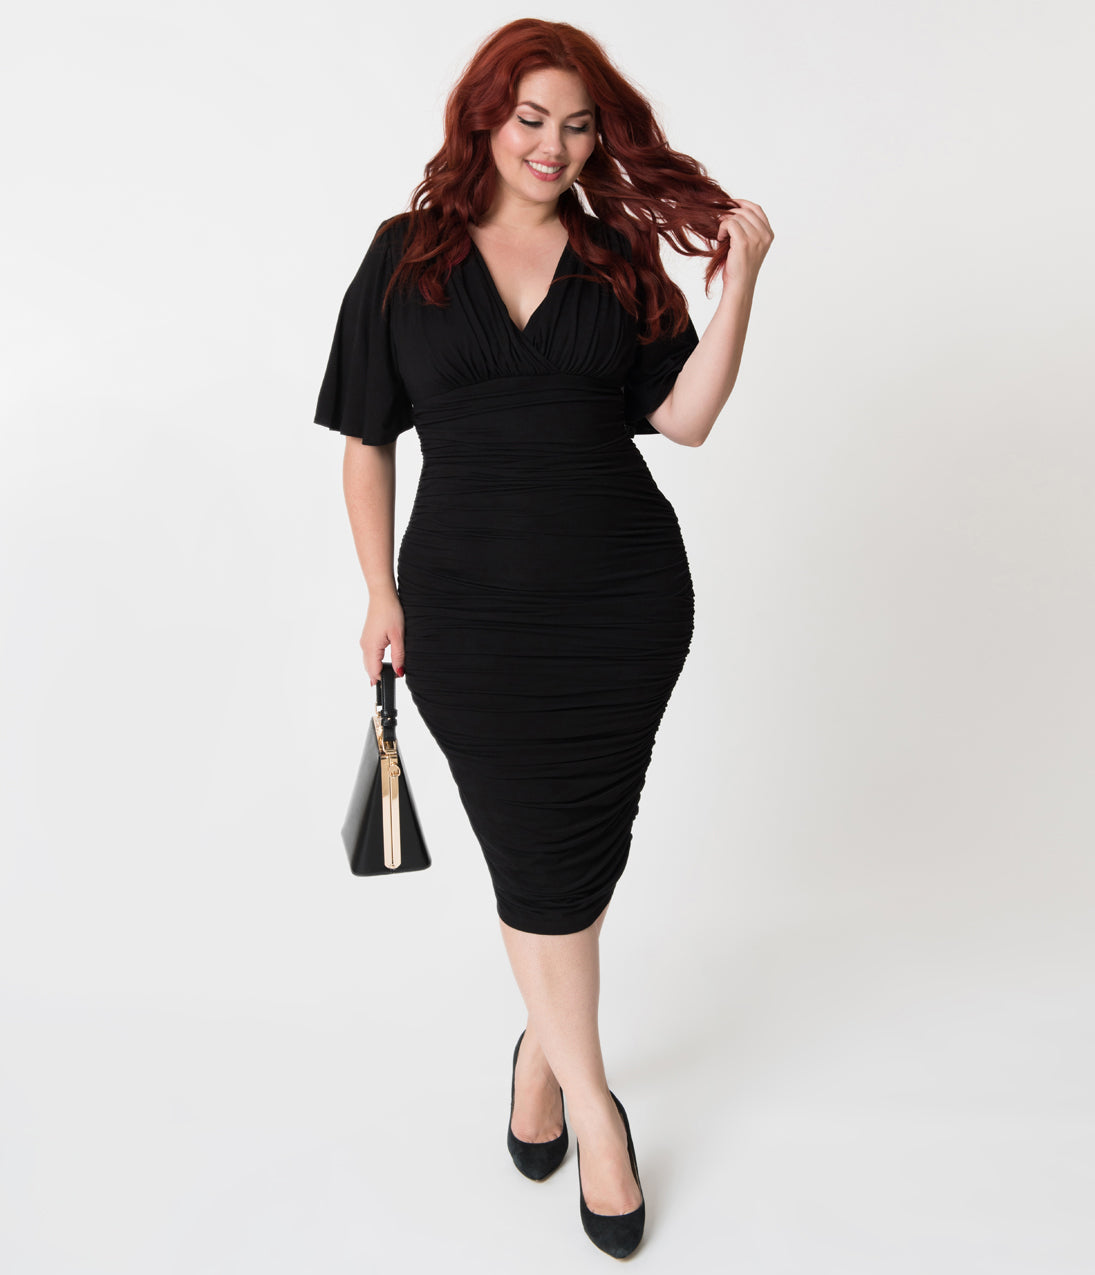 1950s Plus Size Dresses, Swing Dresses Plus Size Vintage Style Black Ruched Flutter Sleeve Rumor Wiggle Dress $108.00 AT vintagedancer.com